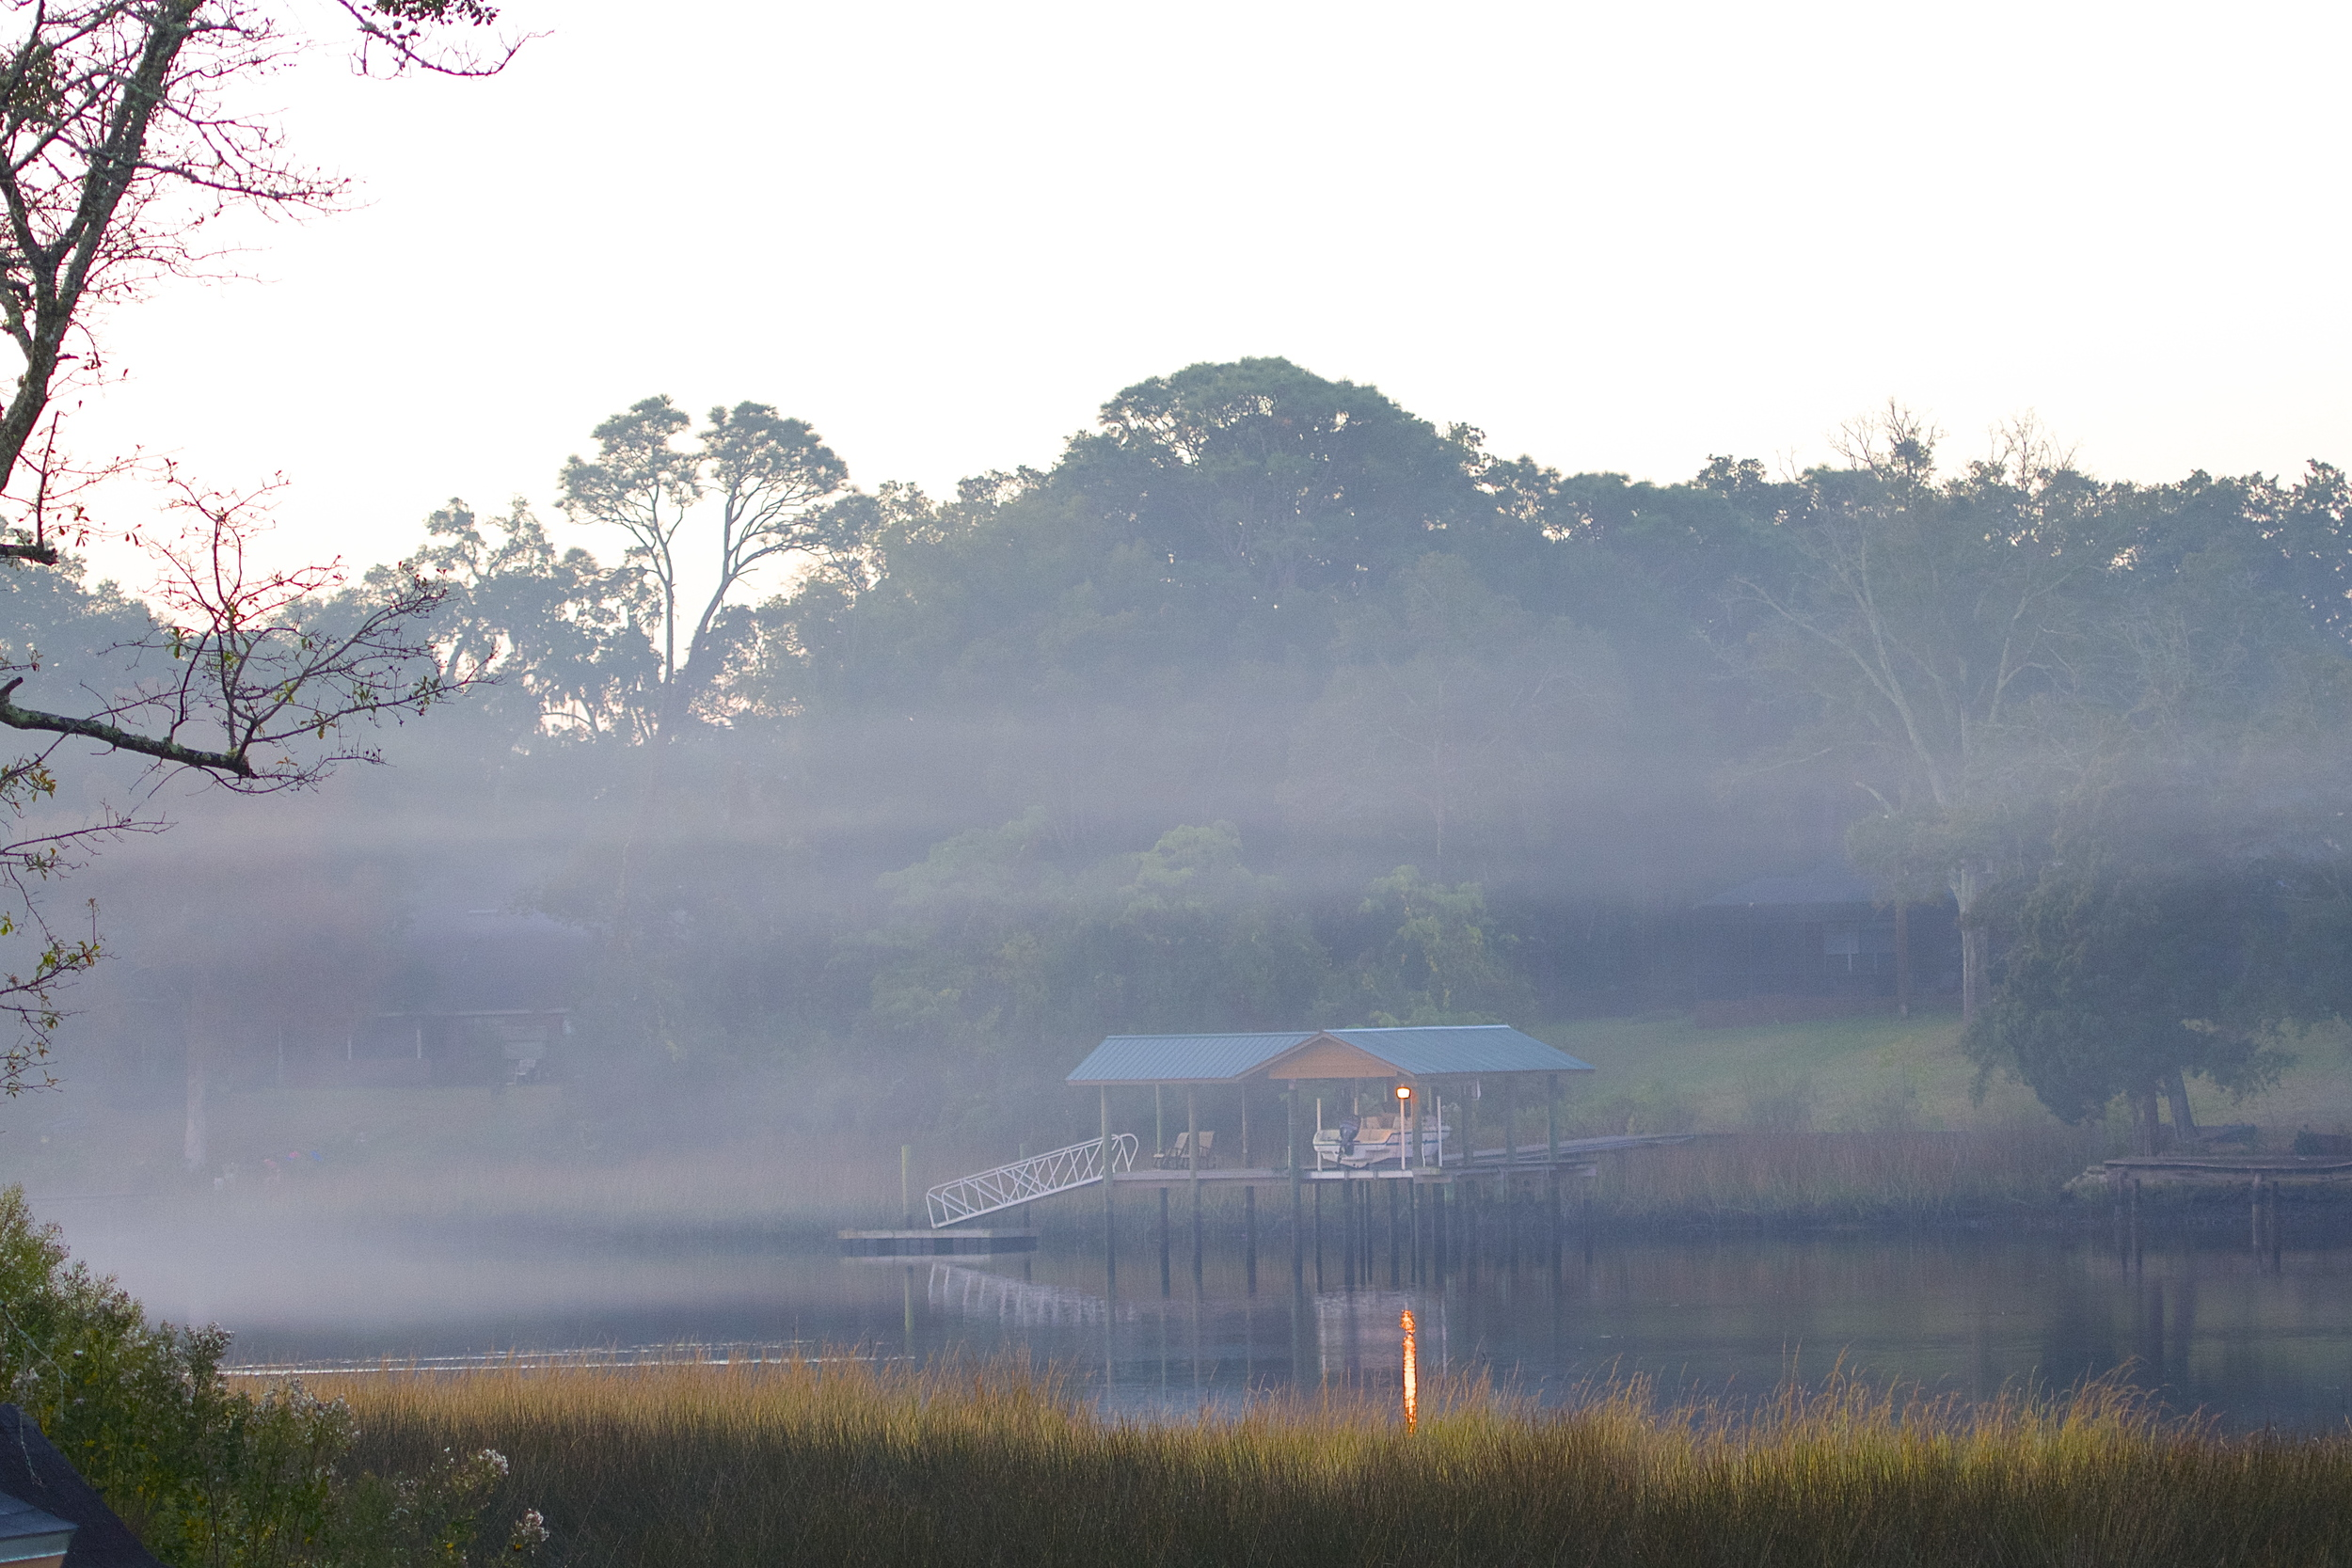 A smoke like layer of fog rises over the water this winter morning on the Broward.